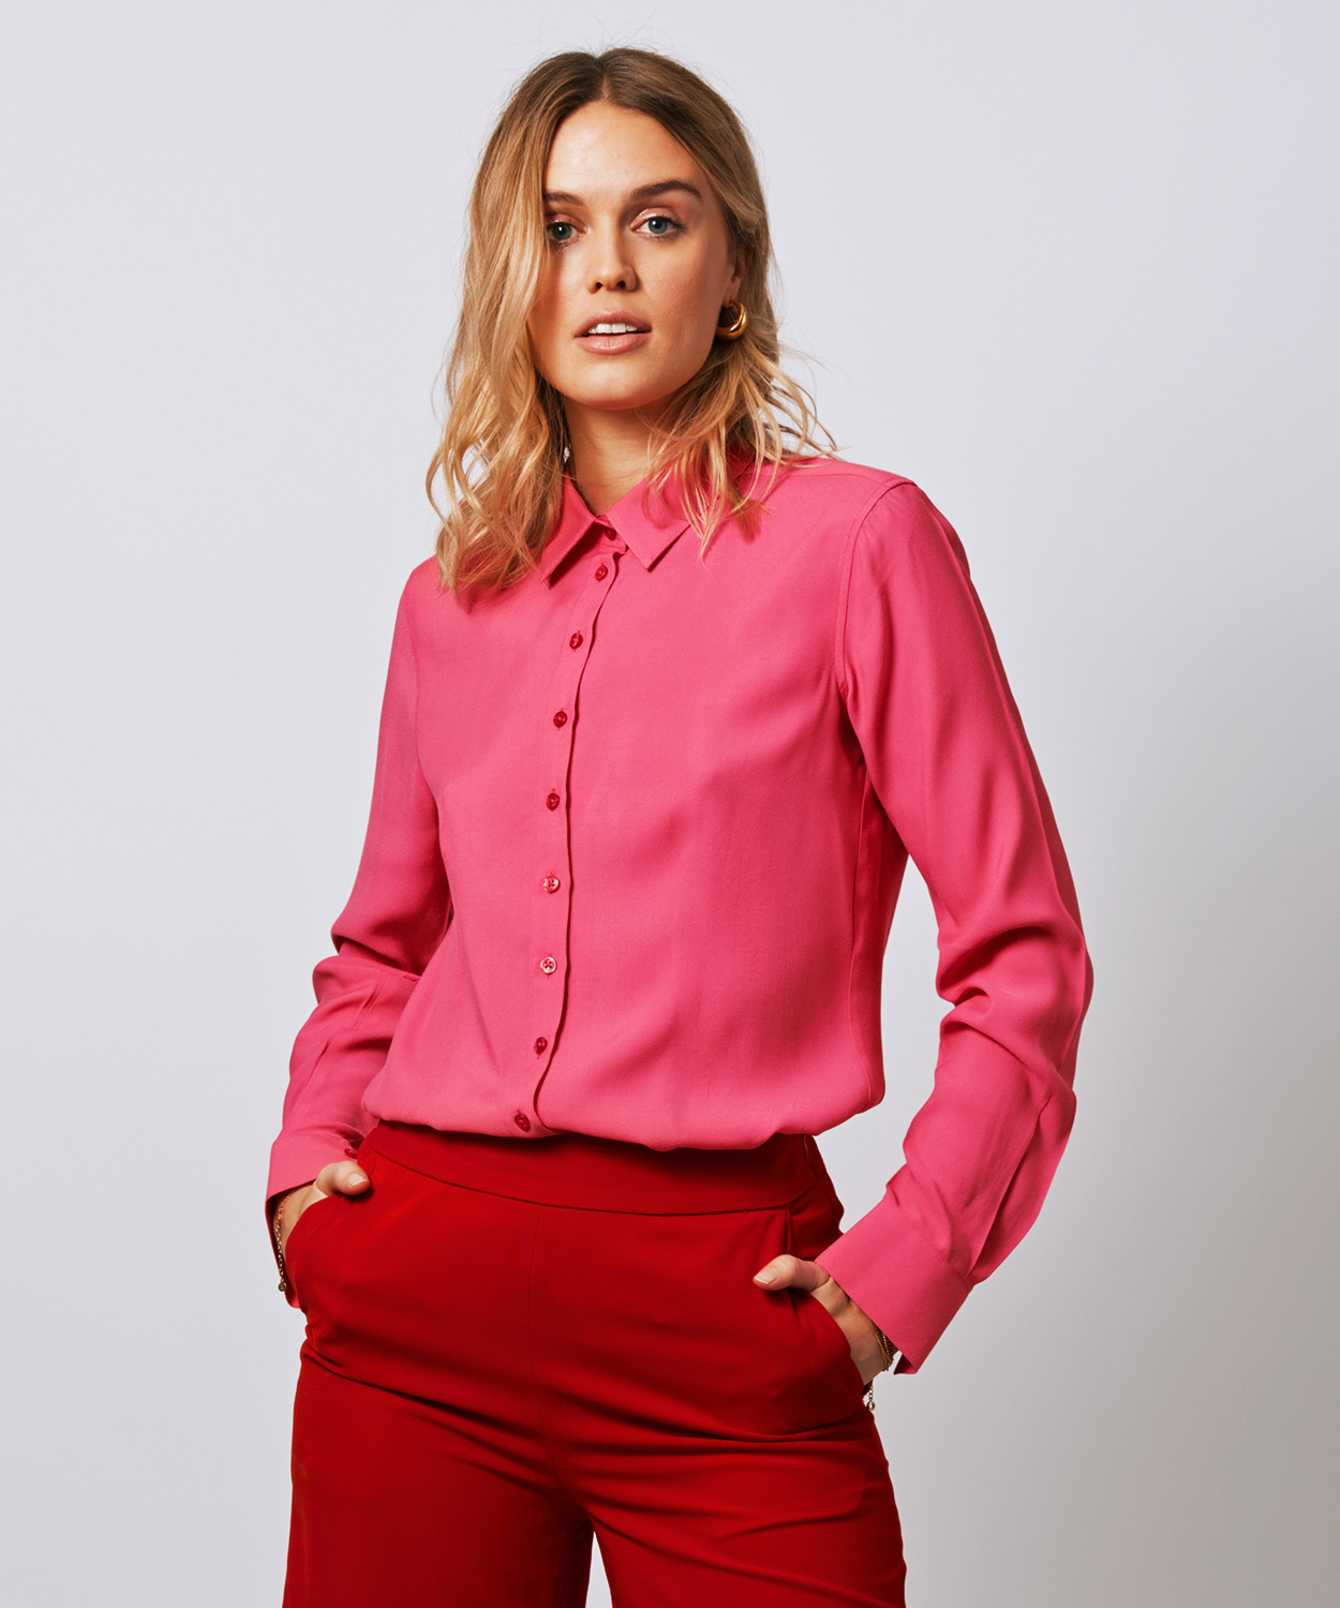 Shirt Tilde Verona Pink  The Shirt Factory